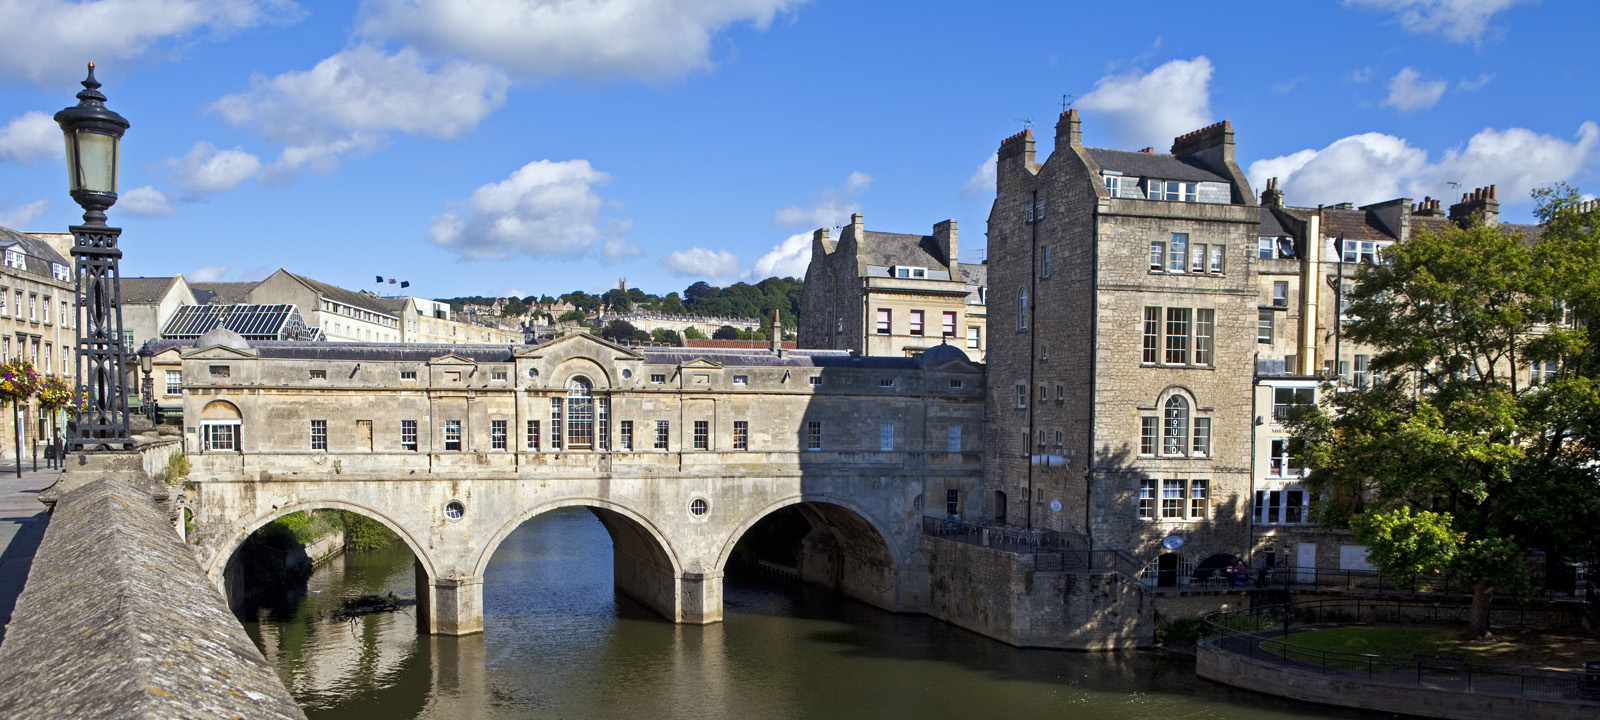 Pulteney Bridge and Weir in Bath